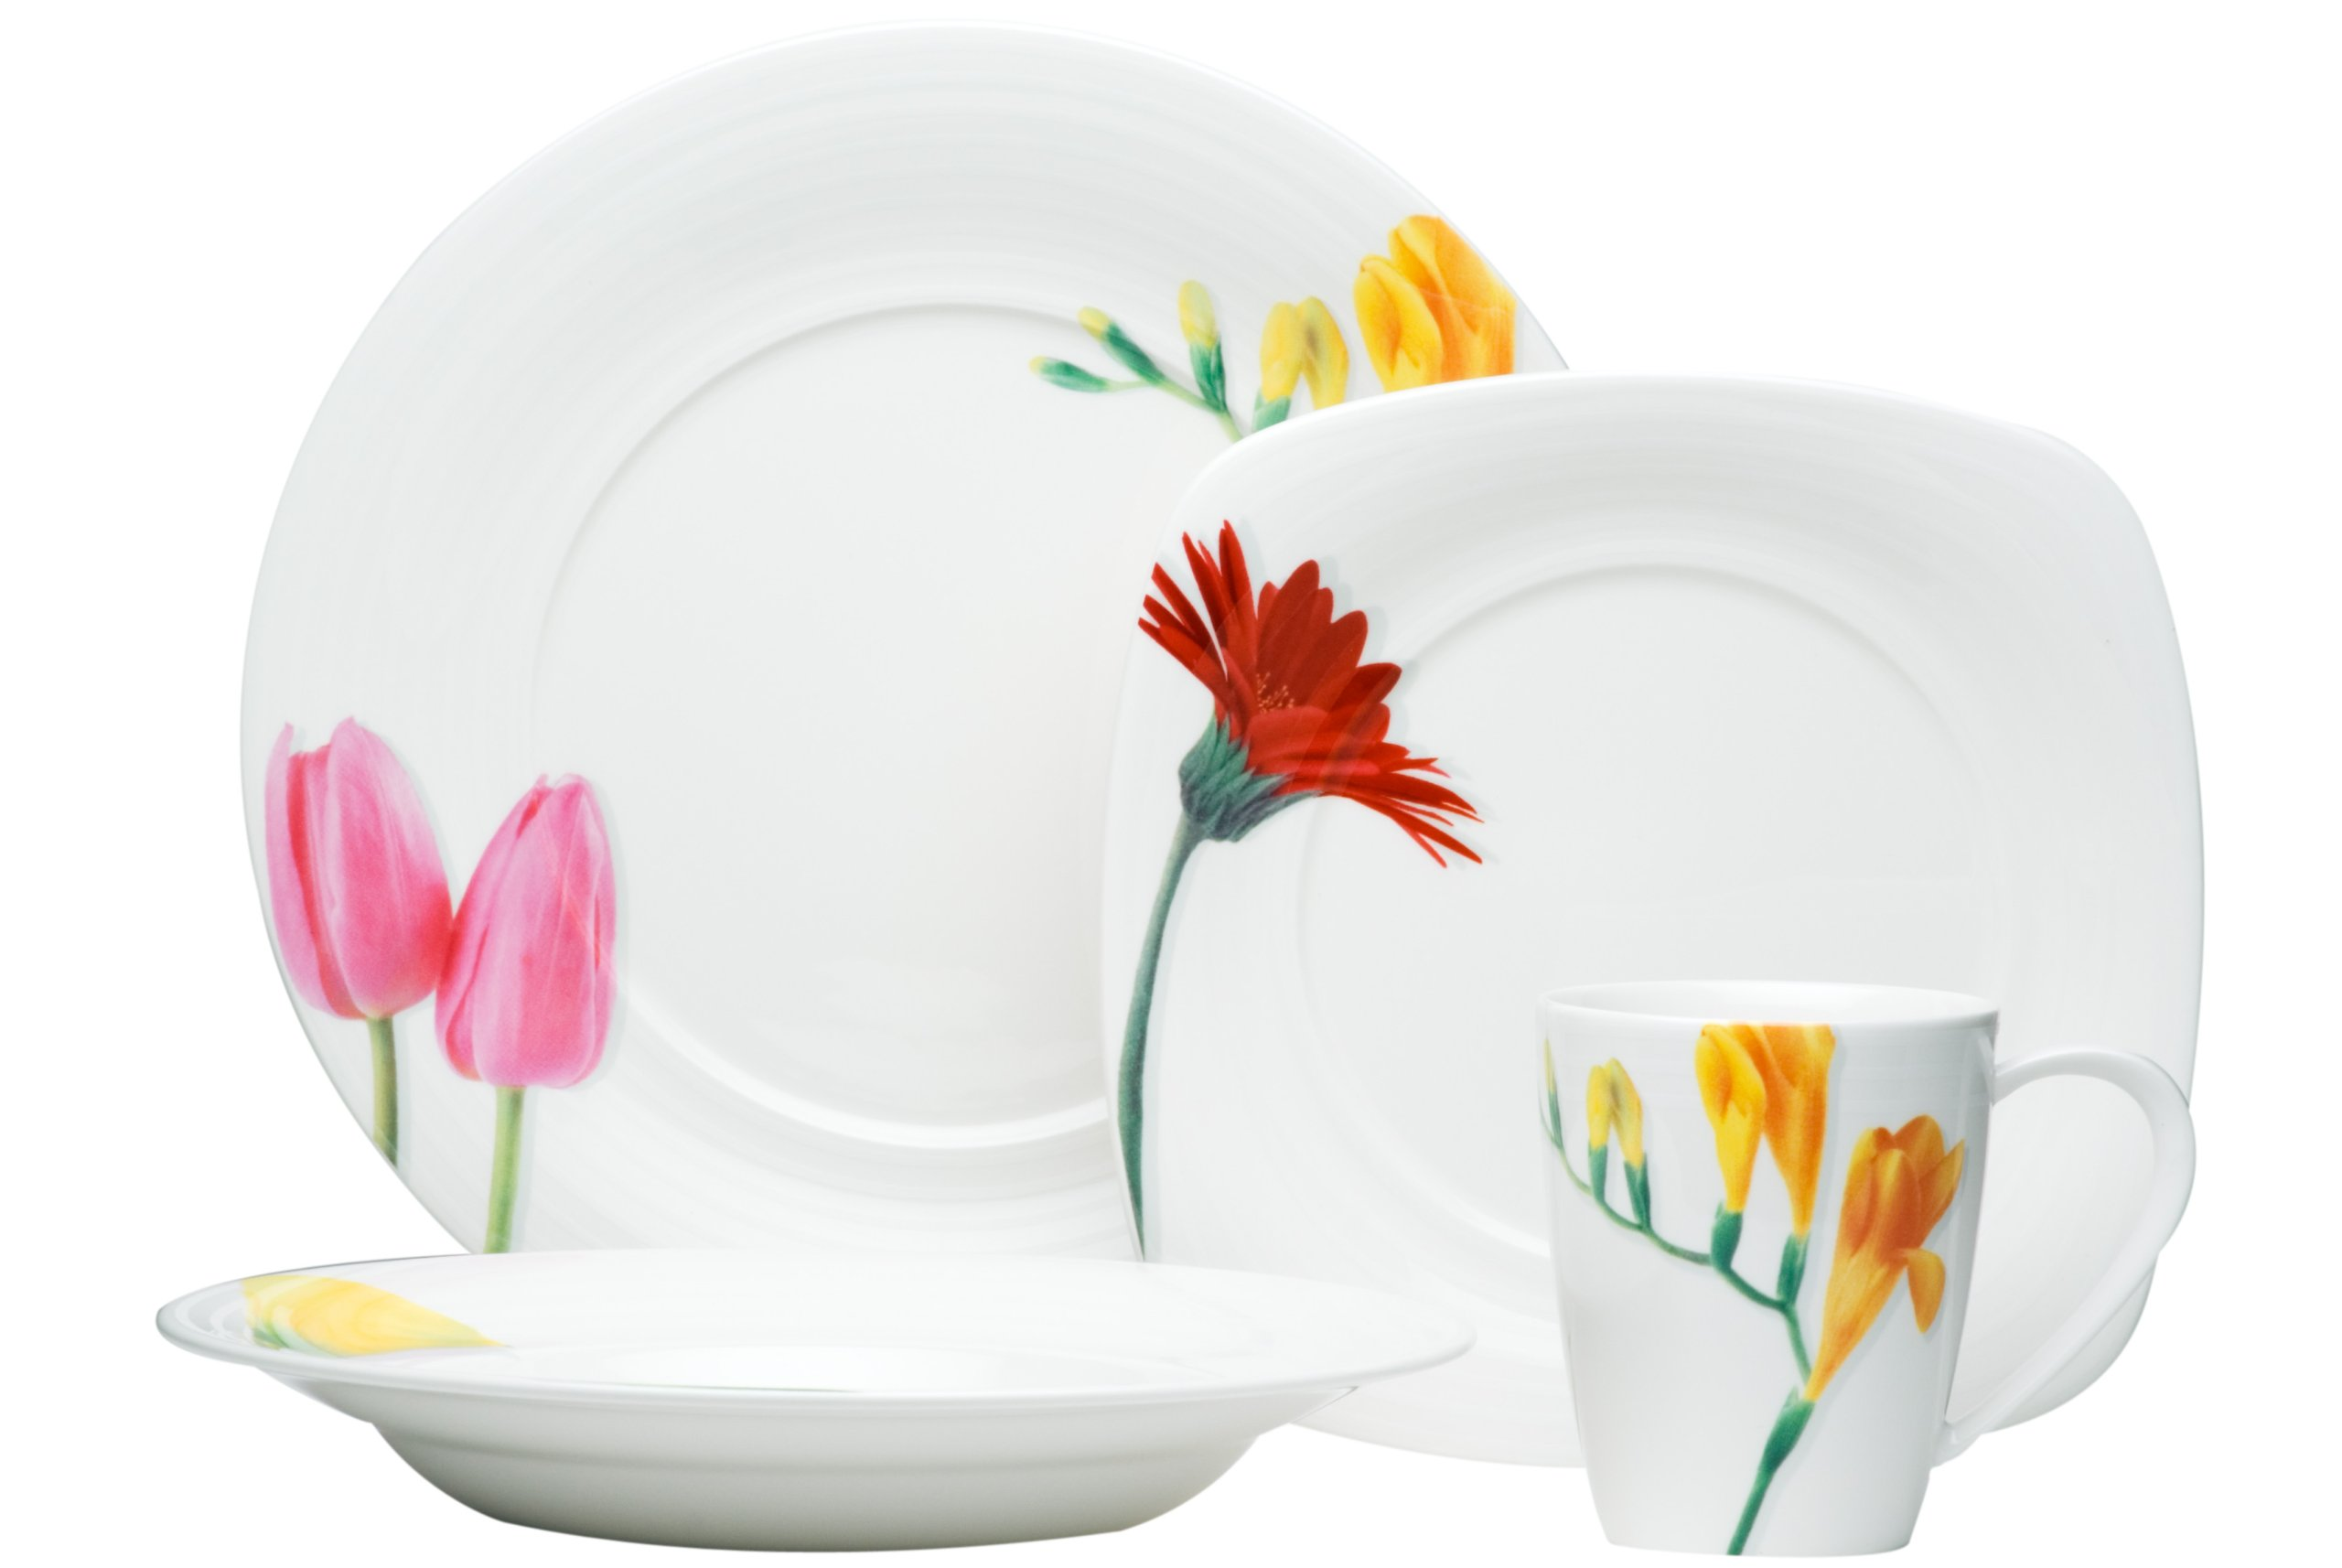 Red Vanilla Dutch Garden 16-Piece Dinner Set - Four (4) dinner plates 11-1/2-inch, four (4) cups 3-1/2-inch by 4-inch high, four (4) soup plates 9-1/2-inch, four (4) salad plates 8-1/2-inch Material: stoneware White with pattern - kitchen-tabletop, kitchen-dining-room, dinnerware-sets - 714 L%2BCrJJL -